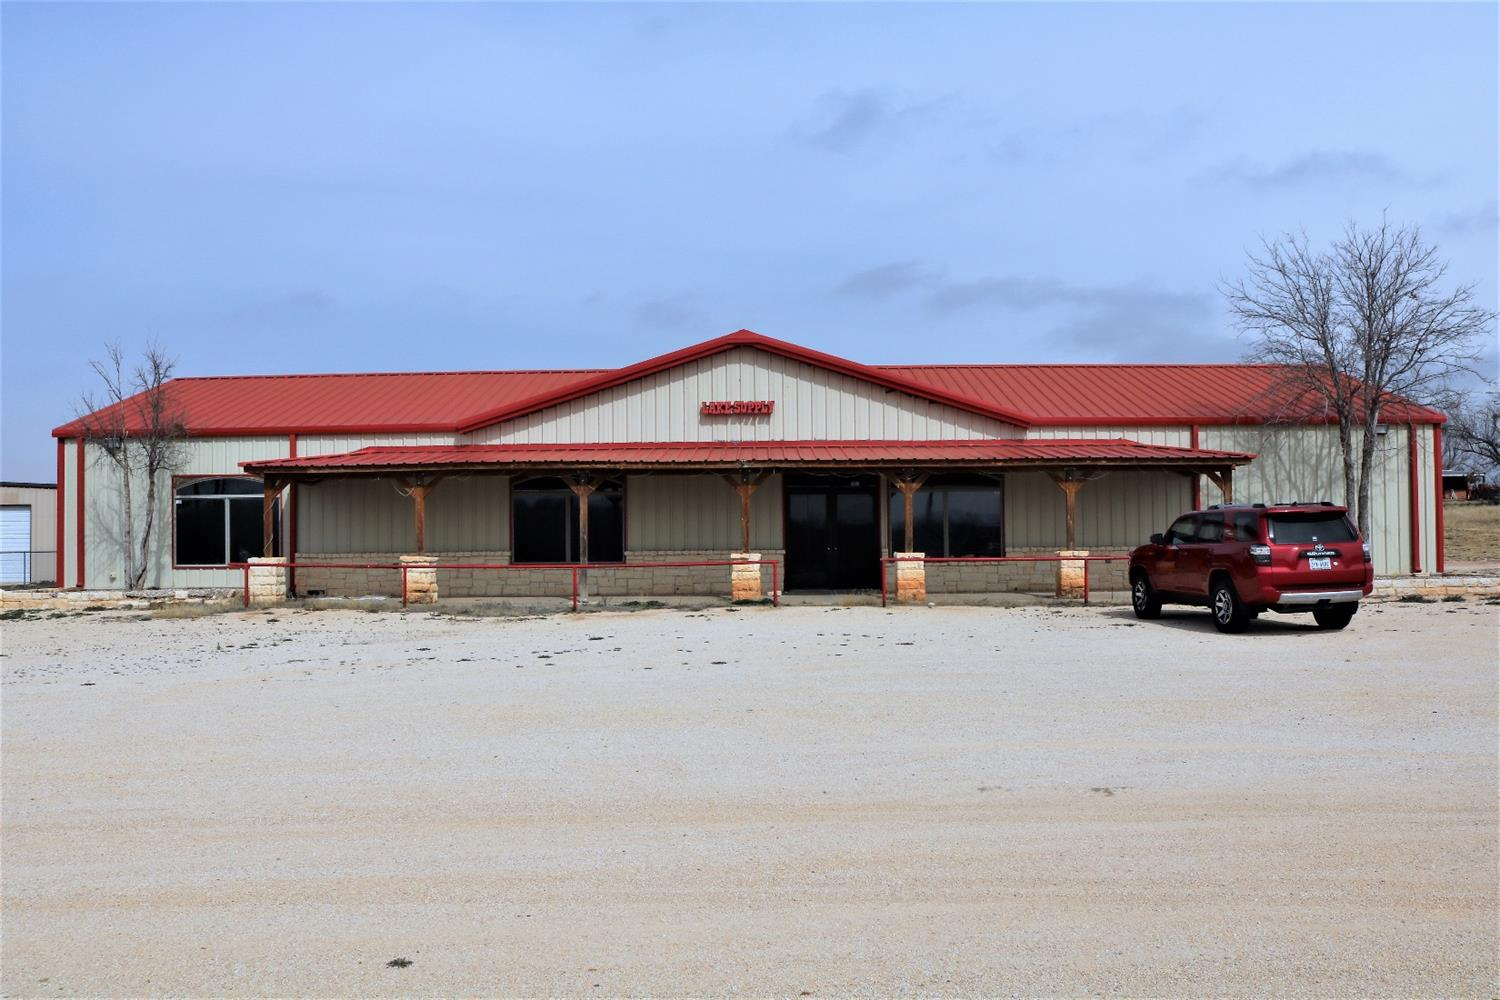 Lake Alan Henry supply store and former restaurant building is now available, situated on 4 acres. Located on the busiest street within the resort. This is a mixed use residential/commercial property. Neighboring subdivisions provide the perfect getaway from the big city to enjoy the outdoors with water sports, hiking, camping, and plenty of wildlife. Known for its abundance of Alabama Bass, Lake Alan Henry was named one of the best fishing lakes in Texas by Game and Fish Magazine in 2017. The main building is 40'x100', at 4,000 square feet with high ceilings and a free span interior design. The possibilities are endless. Barndominium, Man Cave, RV Park, Income Producing Potential. Boat Repair Service Center, In-door climate-controlled storage. This venue is wired with 3-Phase Electricity, Beverage Chases, and Separate restrooms. Utilities are in place for new construction throughout.